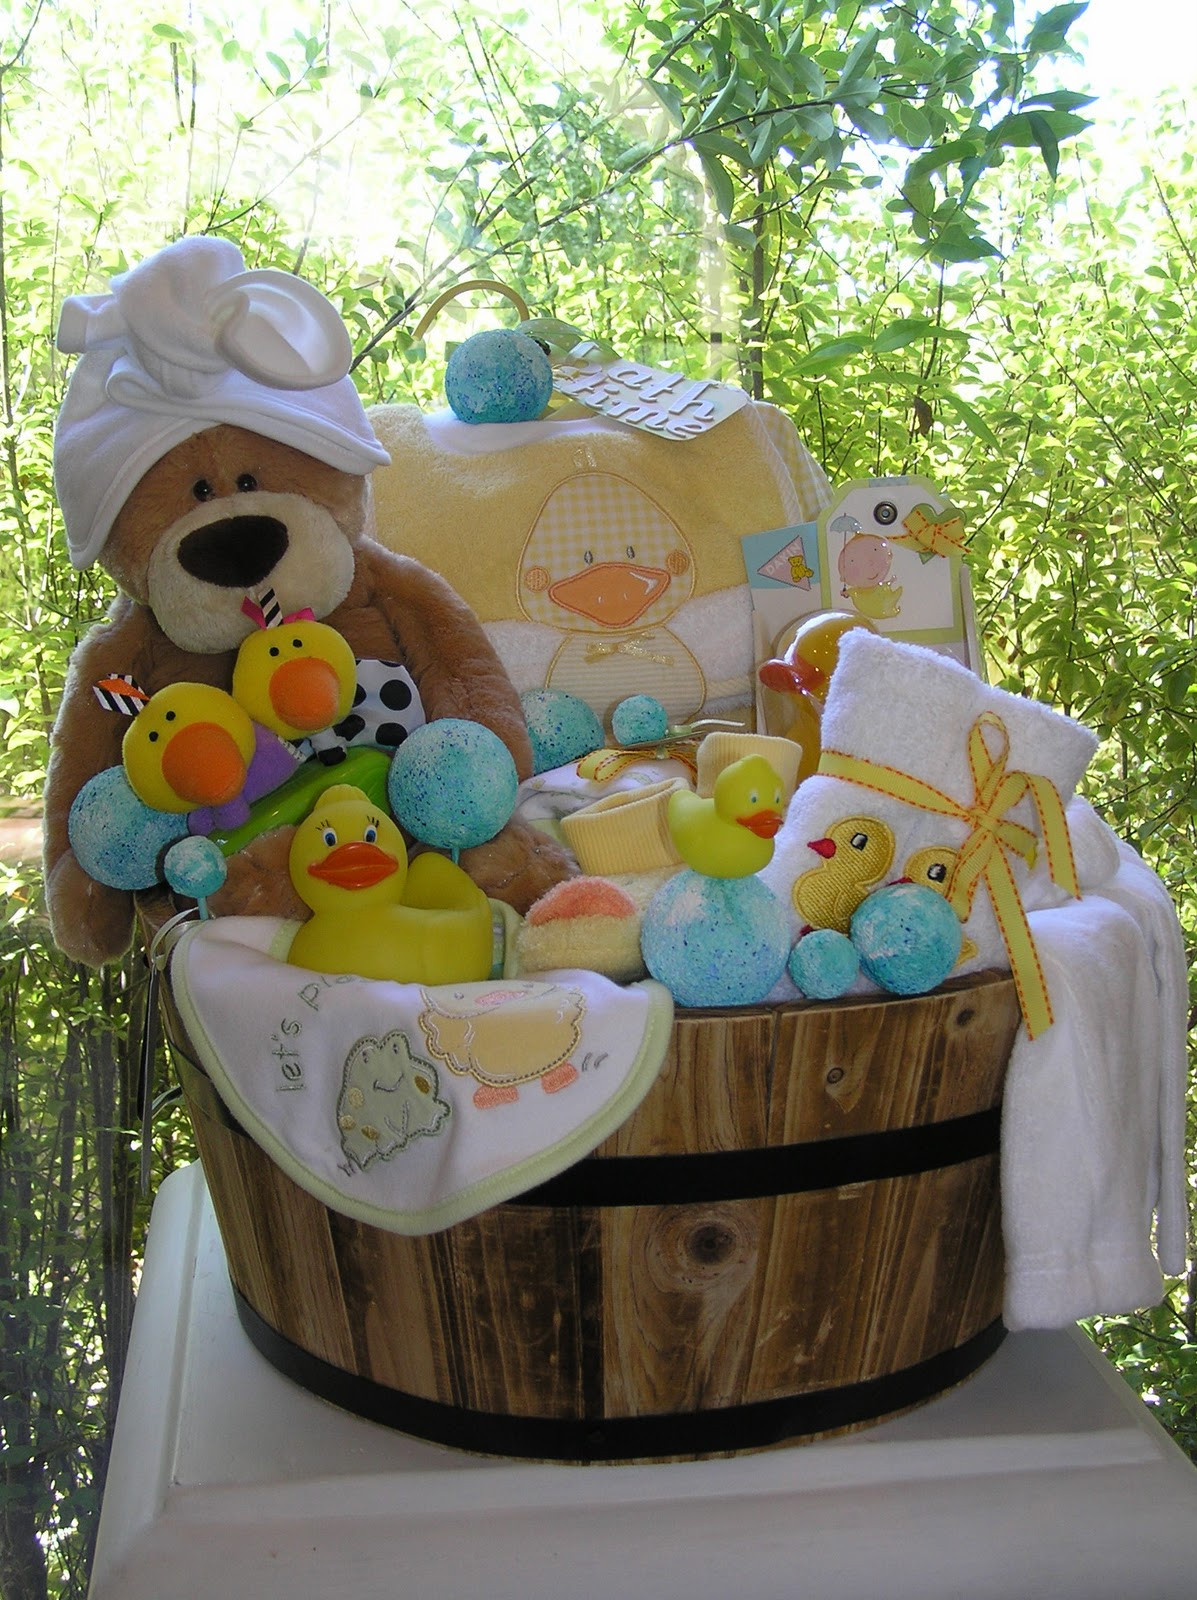 Baby Gift Basket Ideas  White Horse Relics Unique Themed Baby Gift Baskets